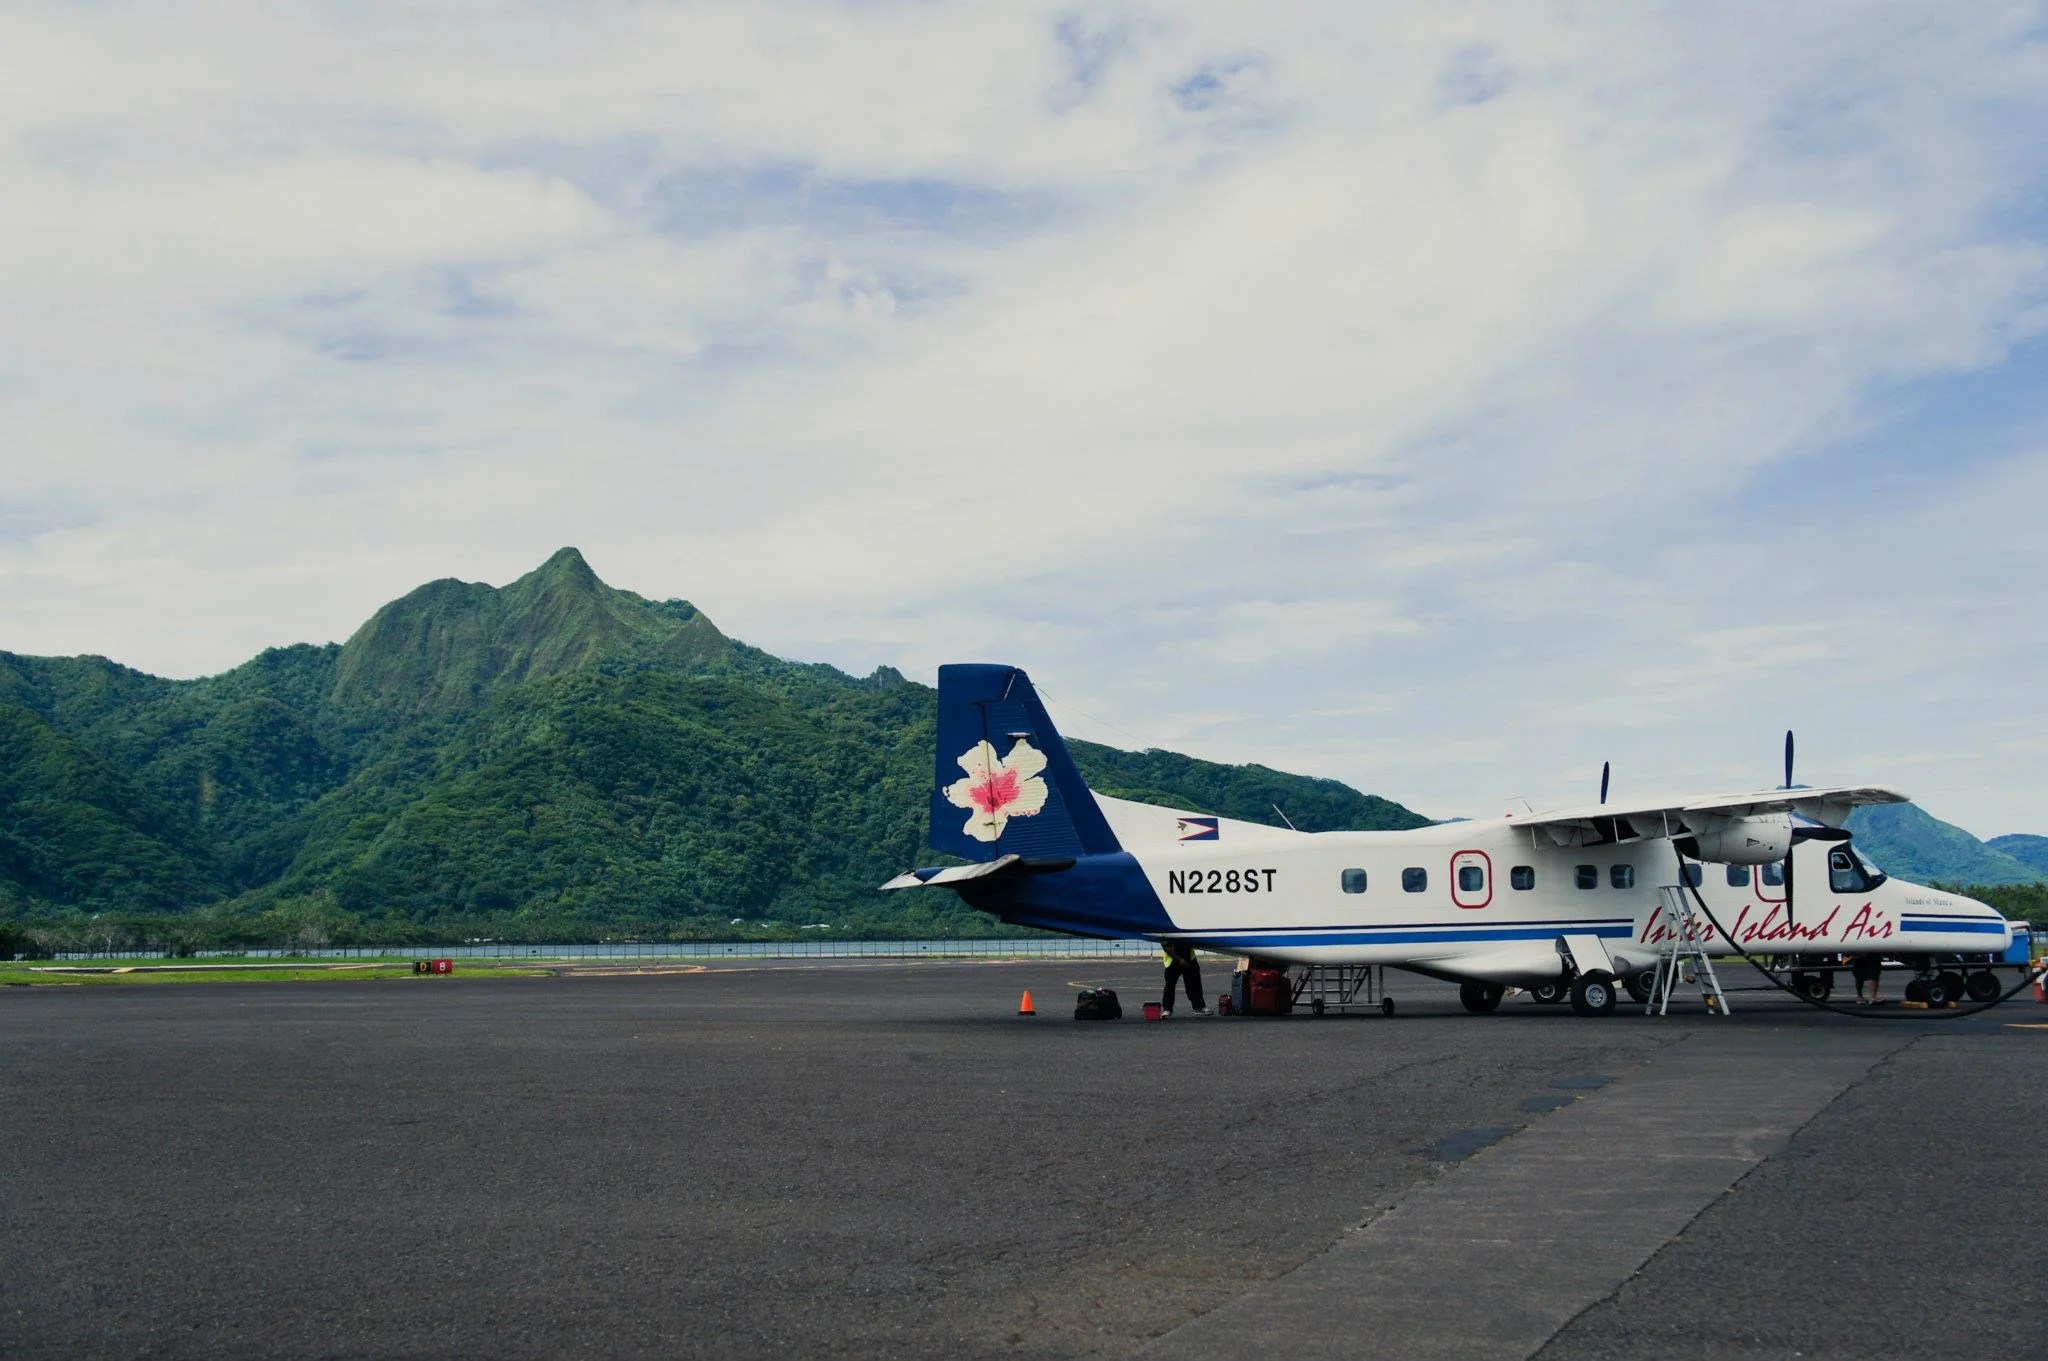 Inter Island Air at PPG Airport in 2012